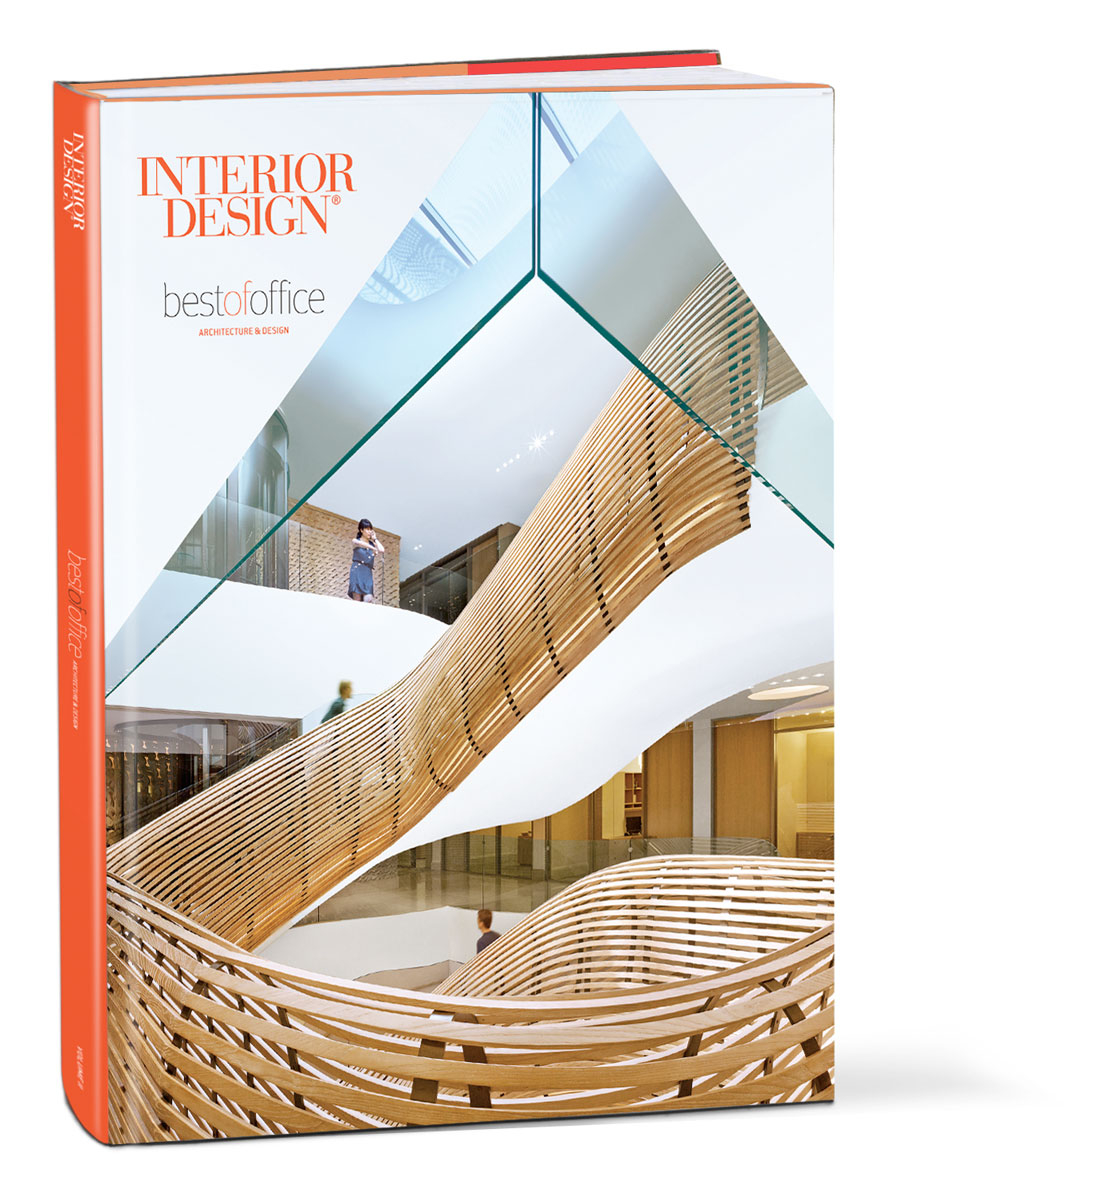 House design books - House Design Books 4